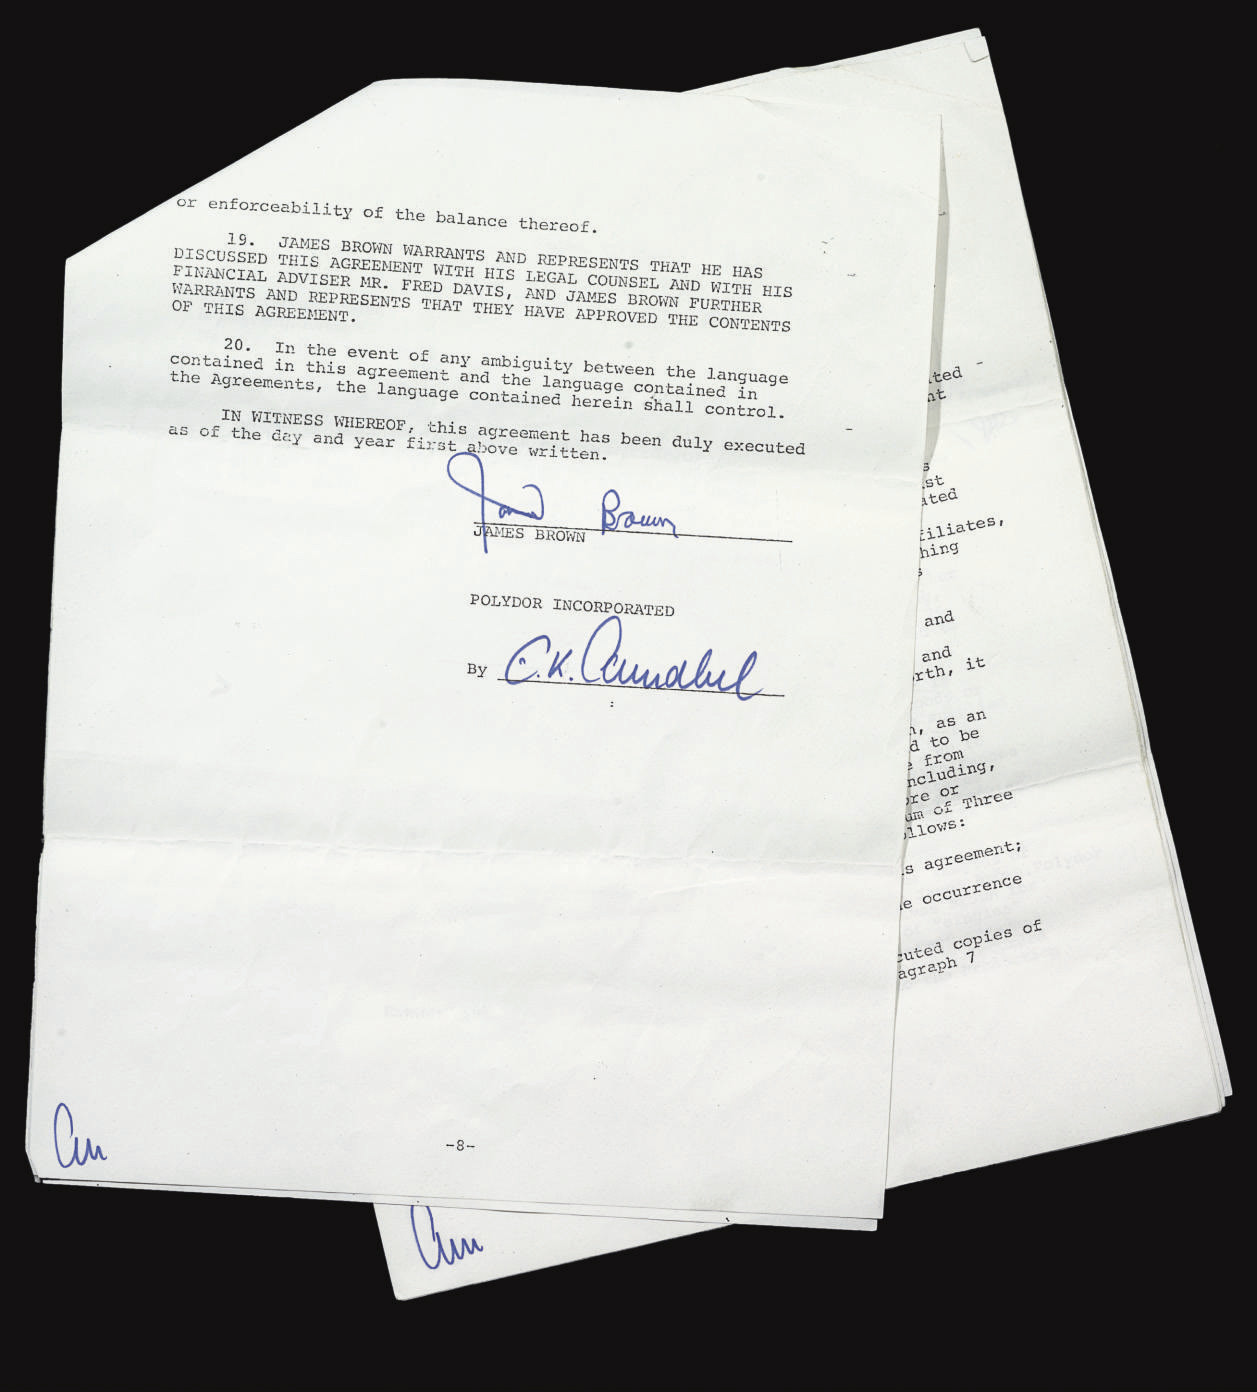 Signed Agreement